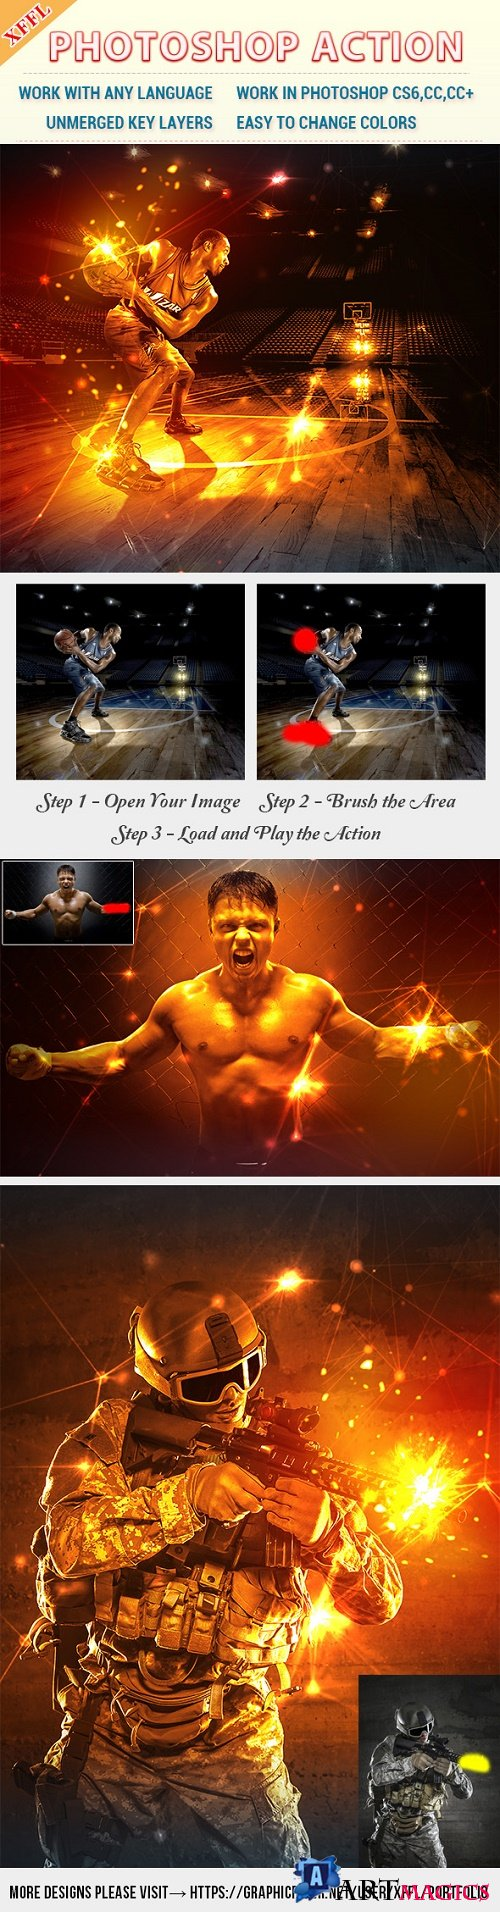 Spark Facular Effect Photoshop Action 21629969